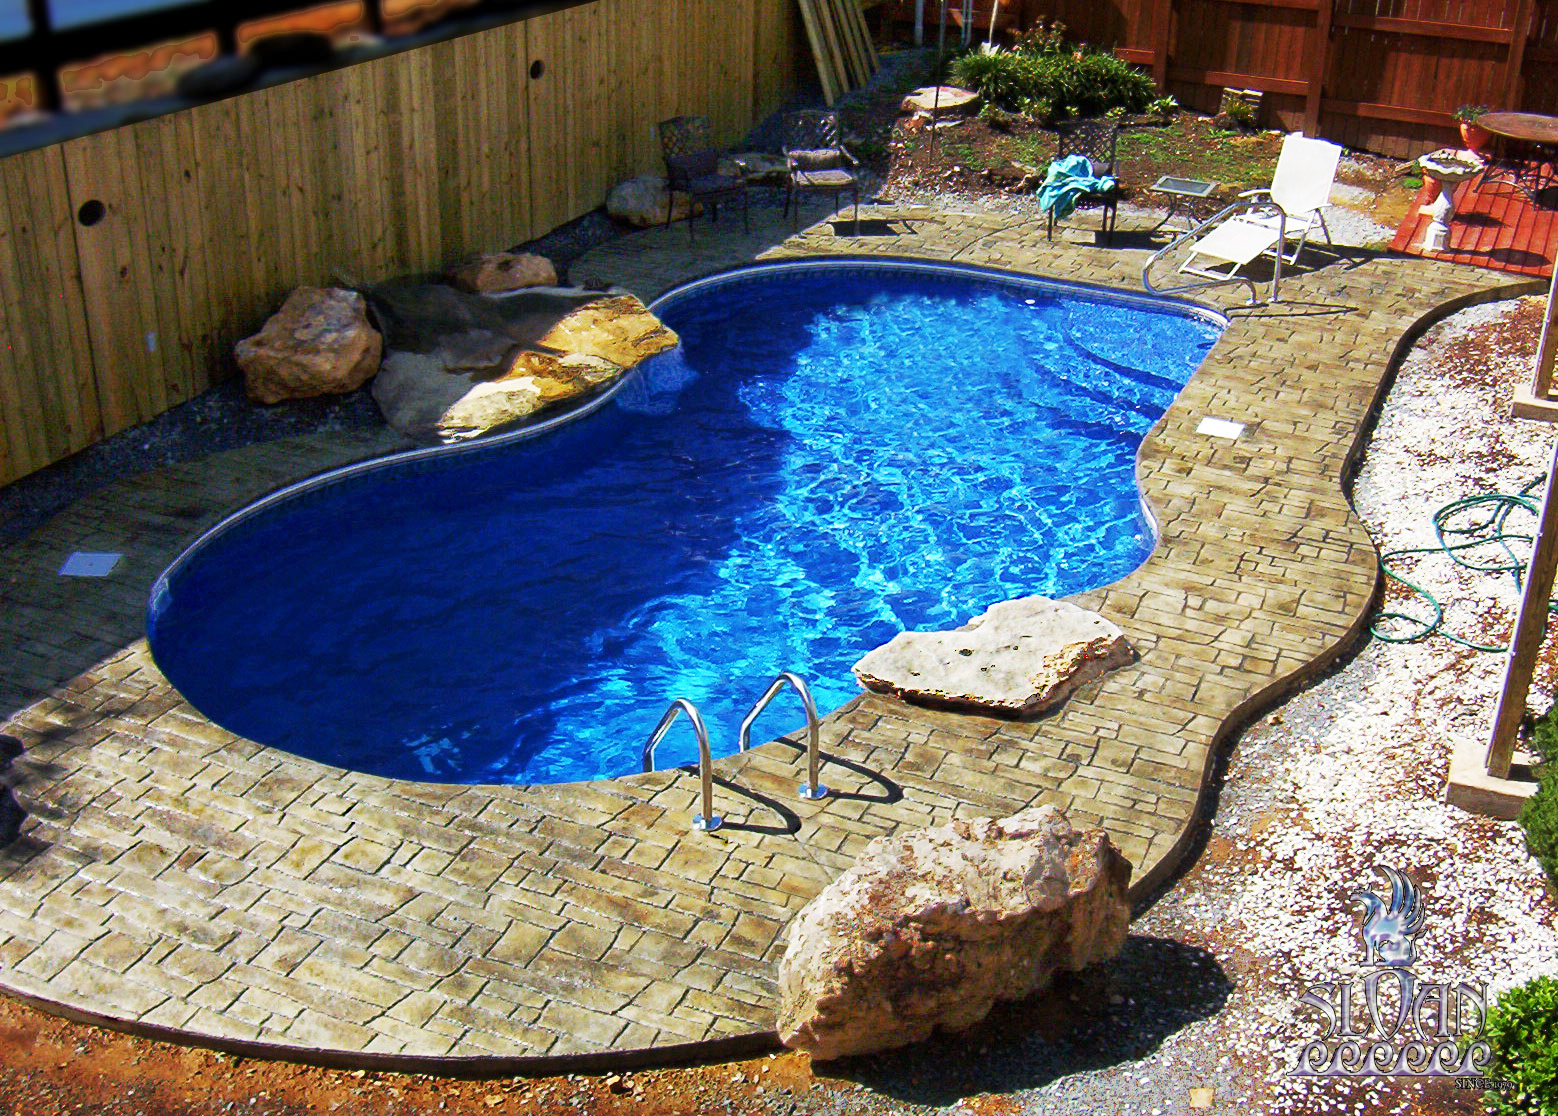 Cape concrete designs stamped concrete for Concrete pool designs